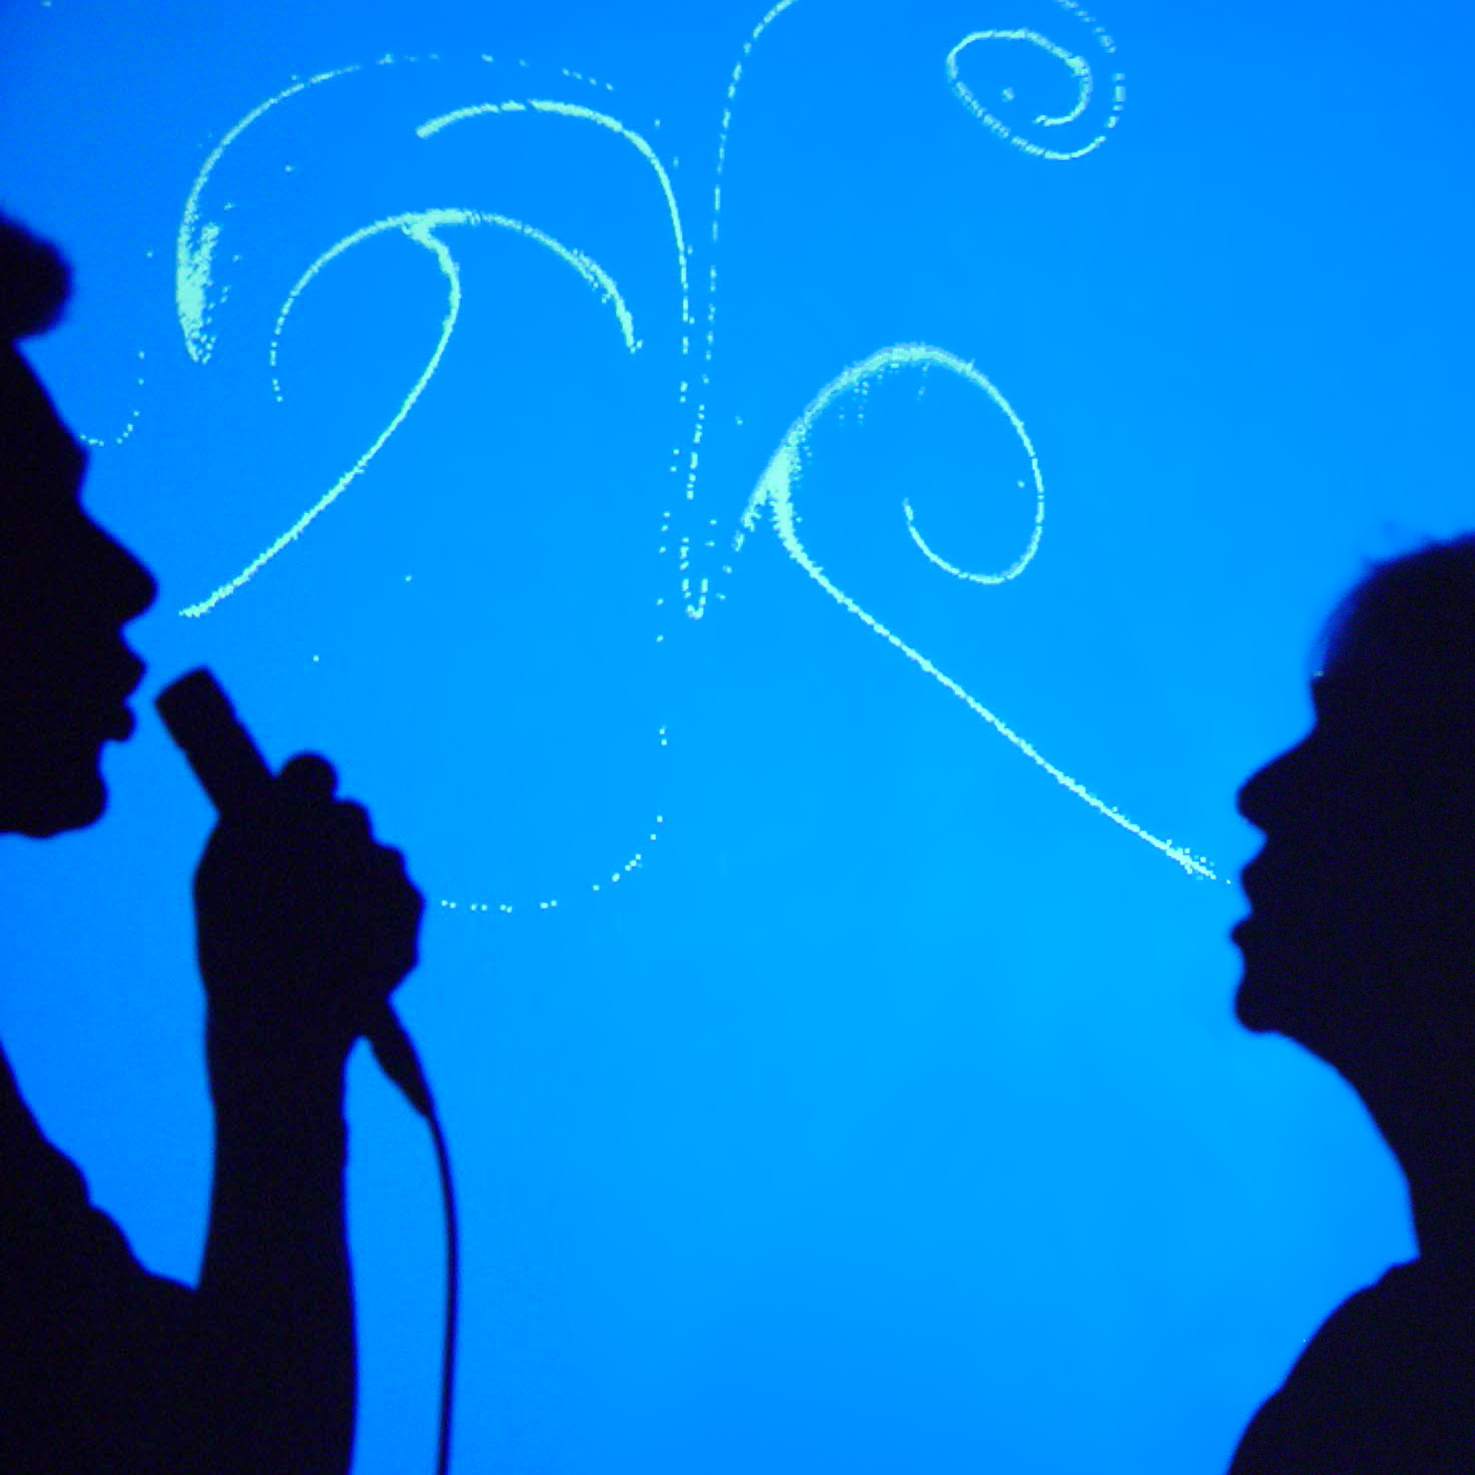 Shadows of two people speaking into microphones, with swirls being projected, seemingly from their mouths.